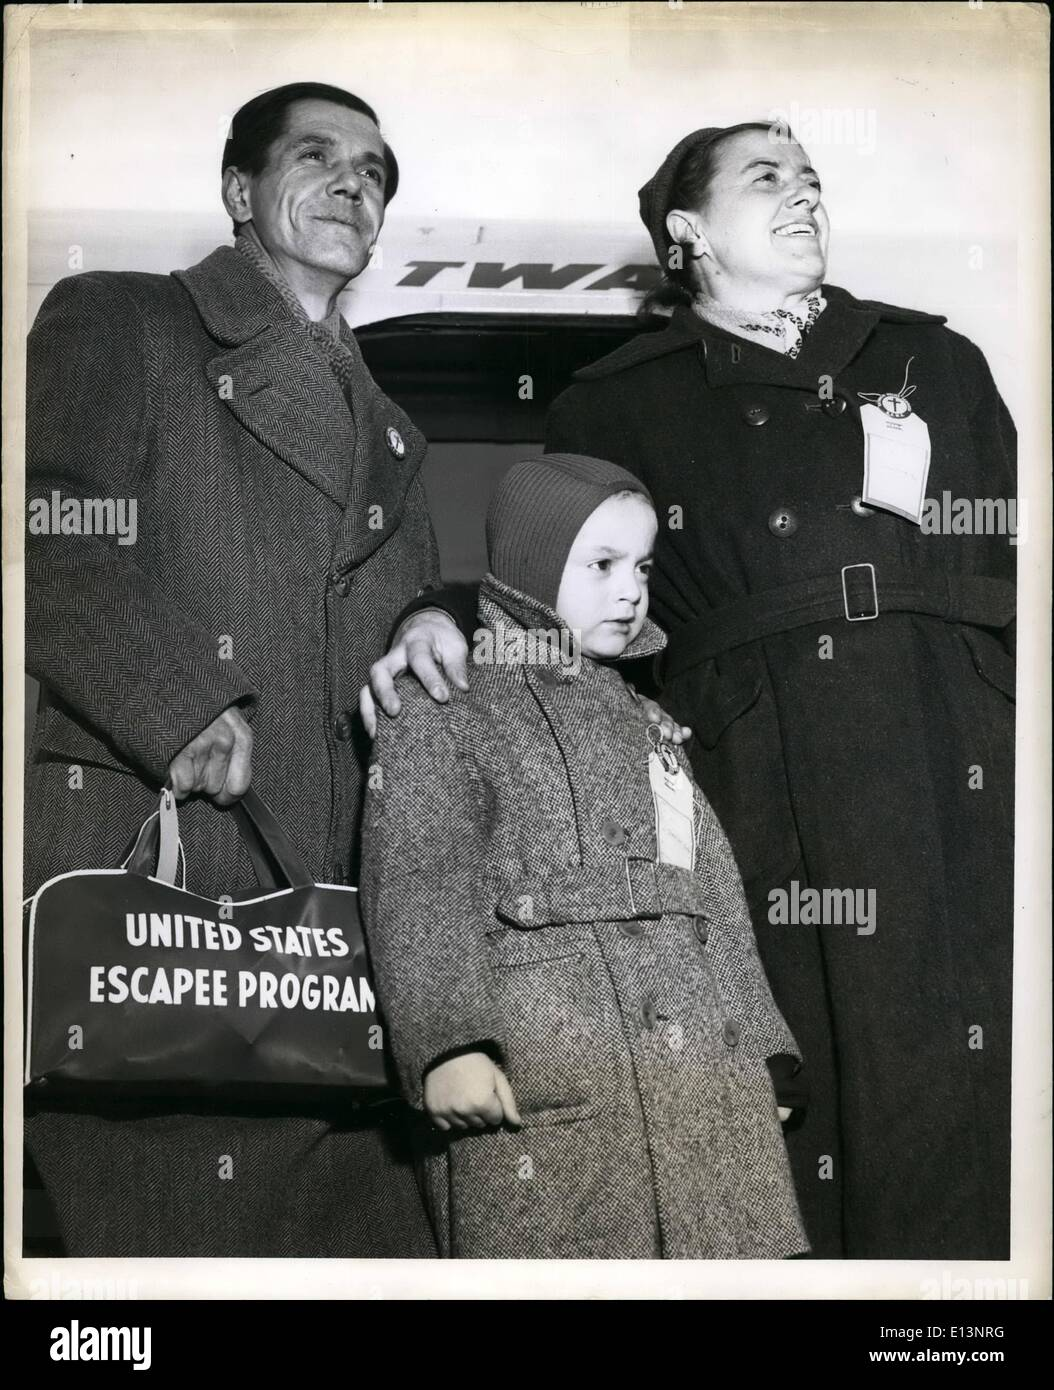 Mar. 22, 2012 - Mc Quine Air Force Sase, N.J.: Their first look at America and new found freedom is taken by this family of Hungarian refugees as they step out the TWA international constellation that flew them here today from Munich, Germany. Mother Ilona and Father Liendor stand behind their six and a half year son Csaba. They were among 120 refugee flown today by TWA. - Stock Image